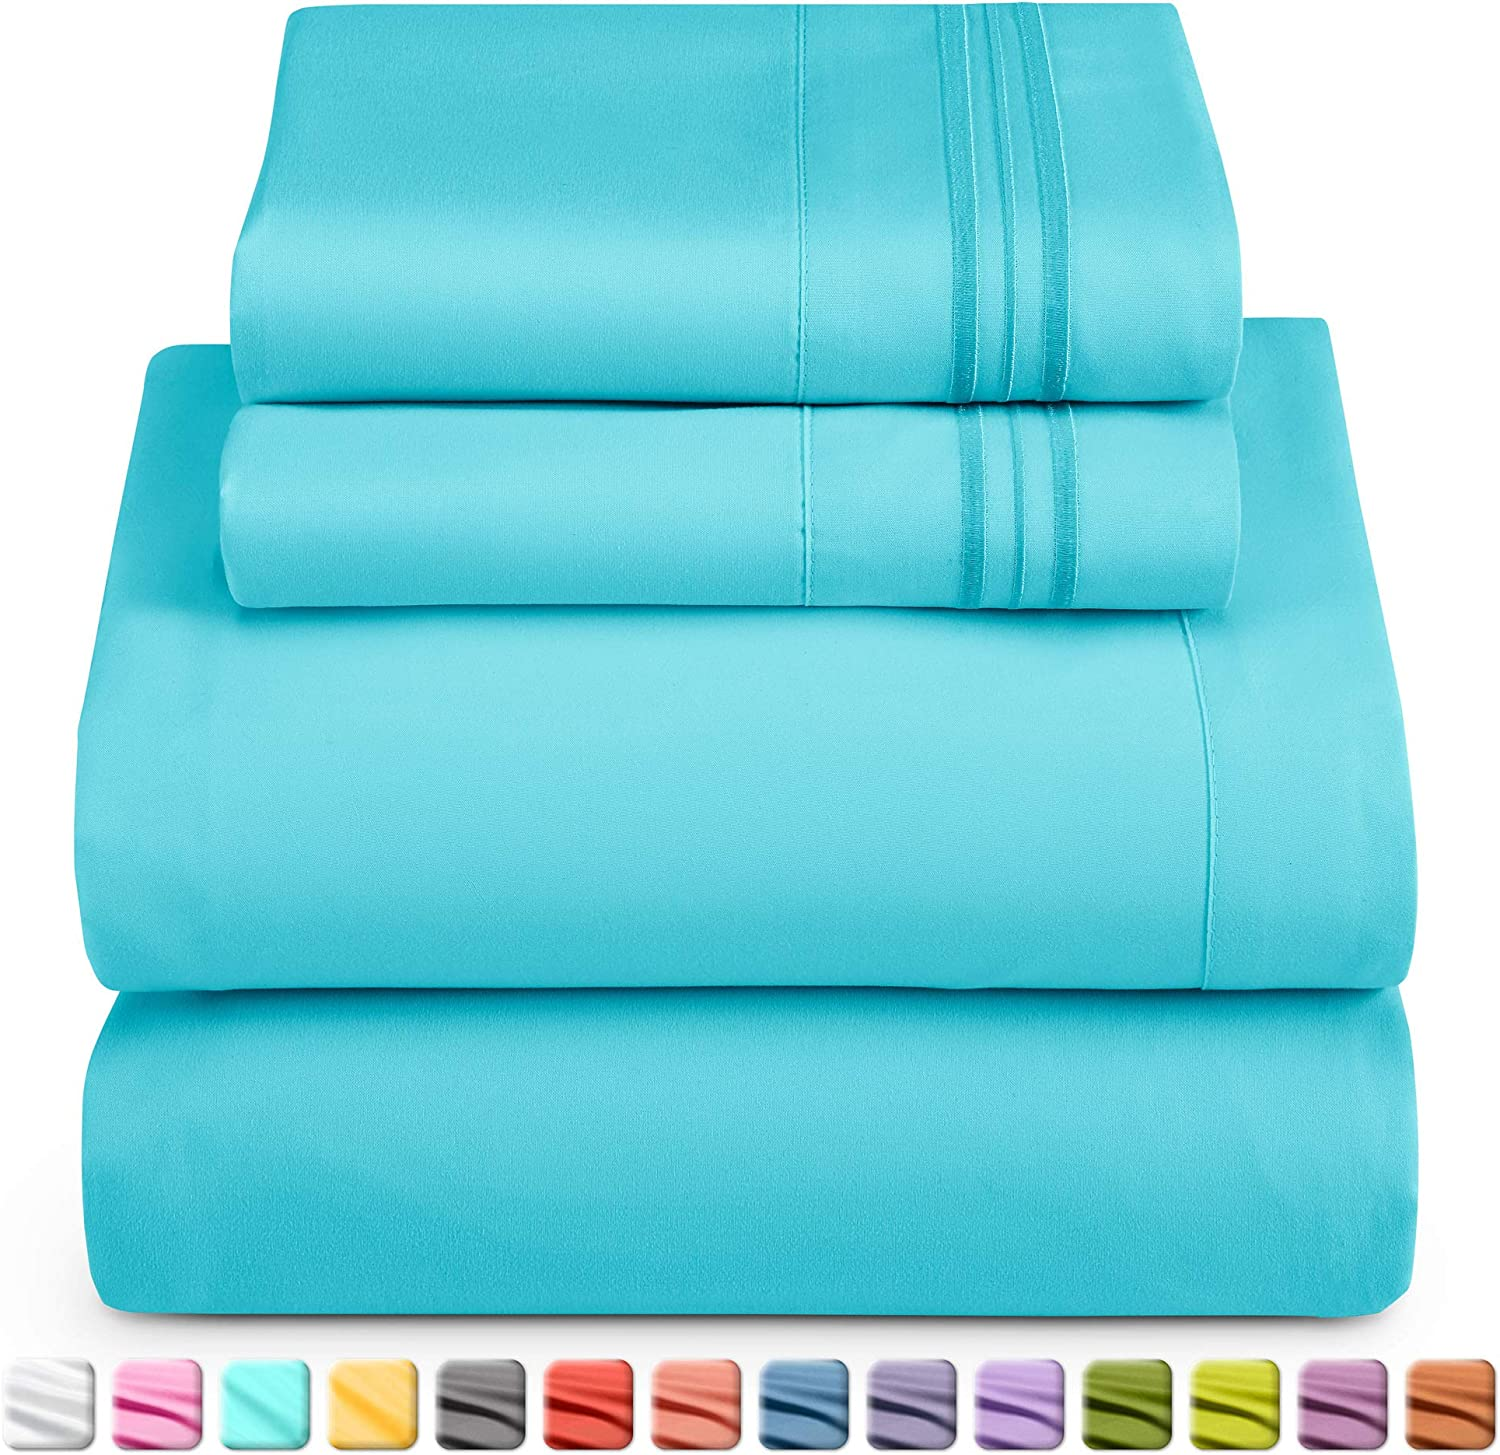 Nestl Deep Pocket Split King Sheets: 5 Piece Split King Size Bed Sheets with Fitted Sheet, Flat Sheet, Pillow Cases - Extra Soft Bedsheet Set with Deep Pockets for Split King Mattress - Beach Blue